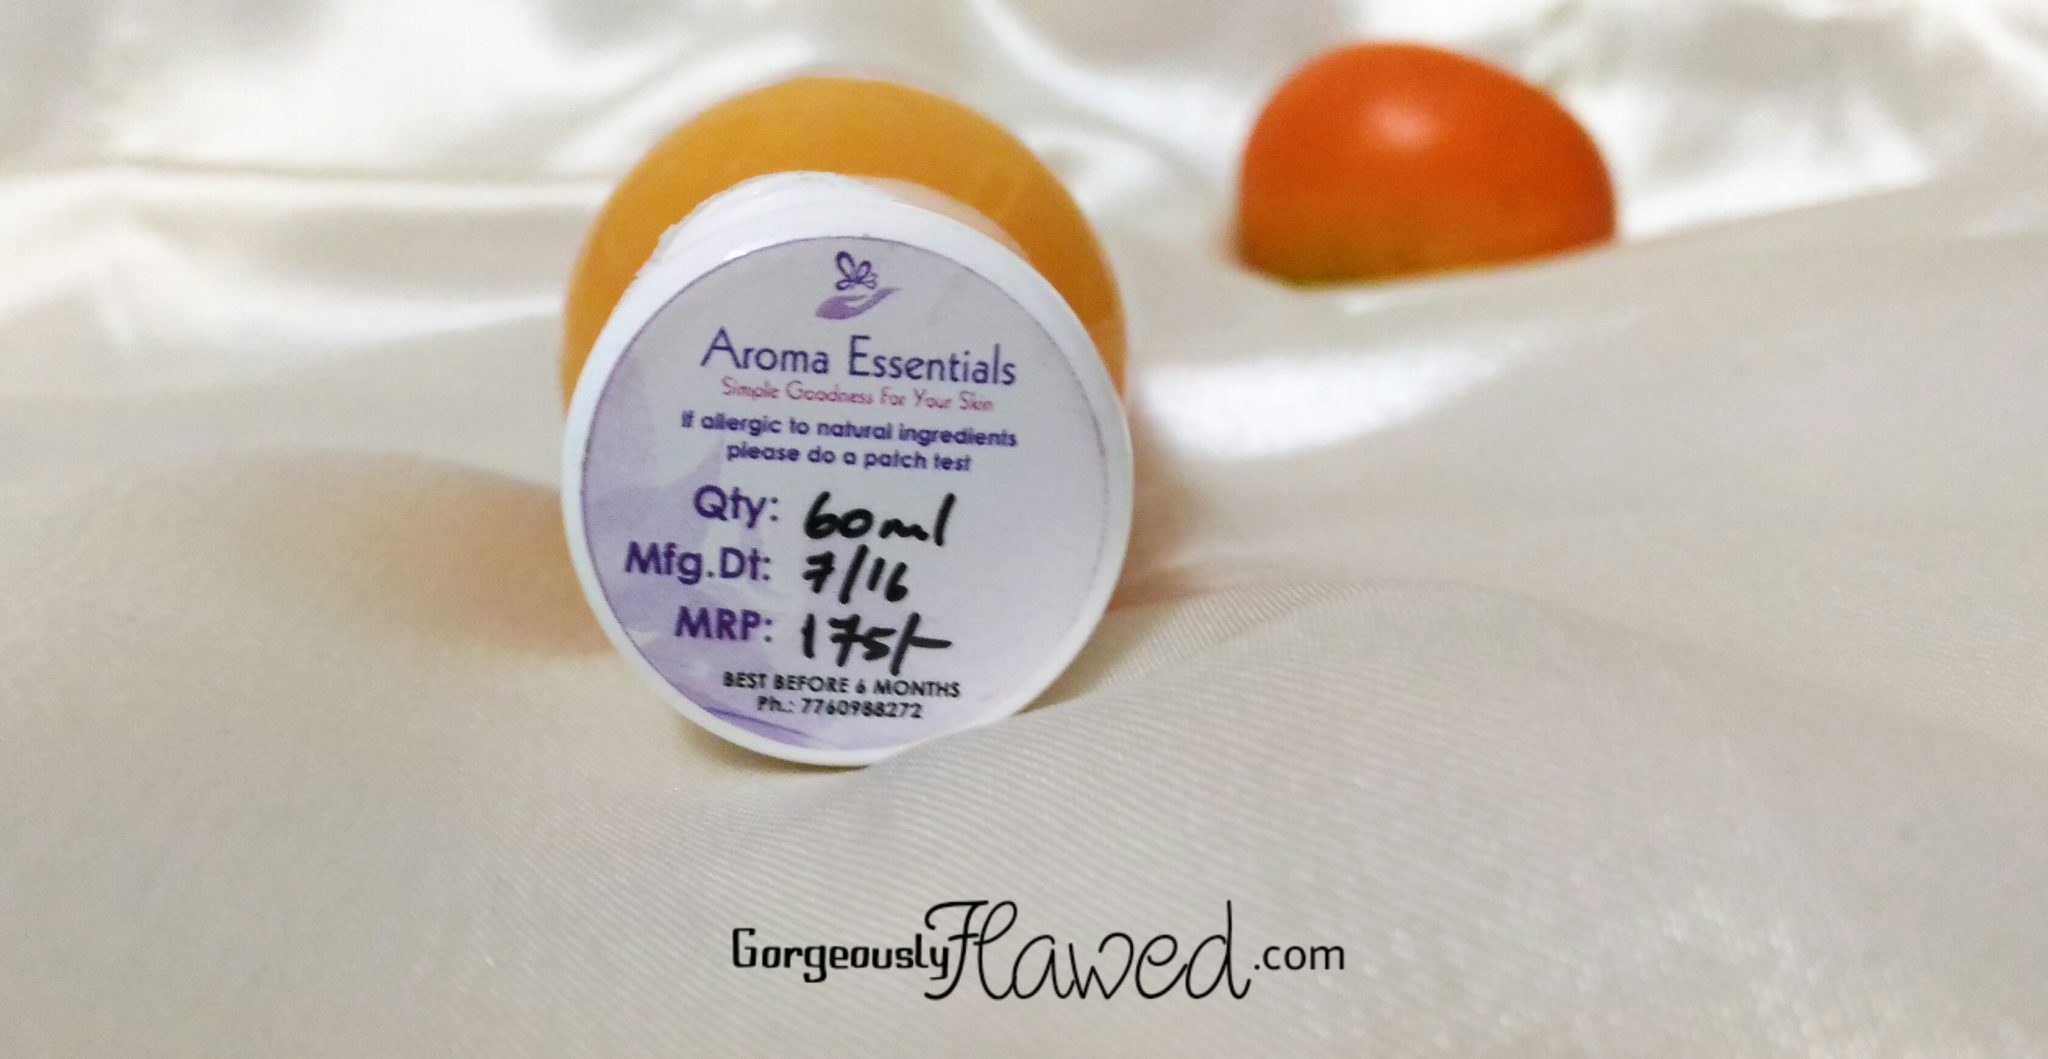 Aroma Essentials Orange Splash